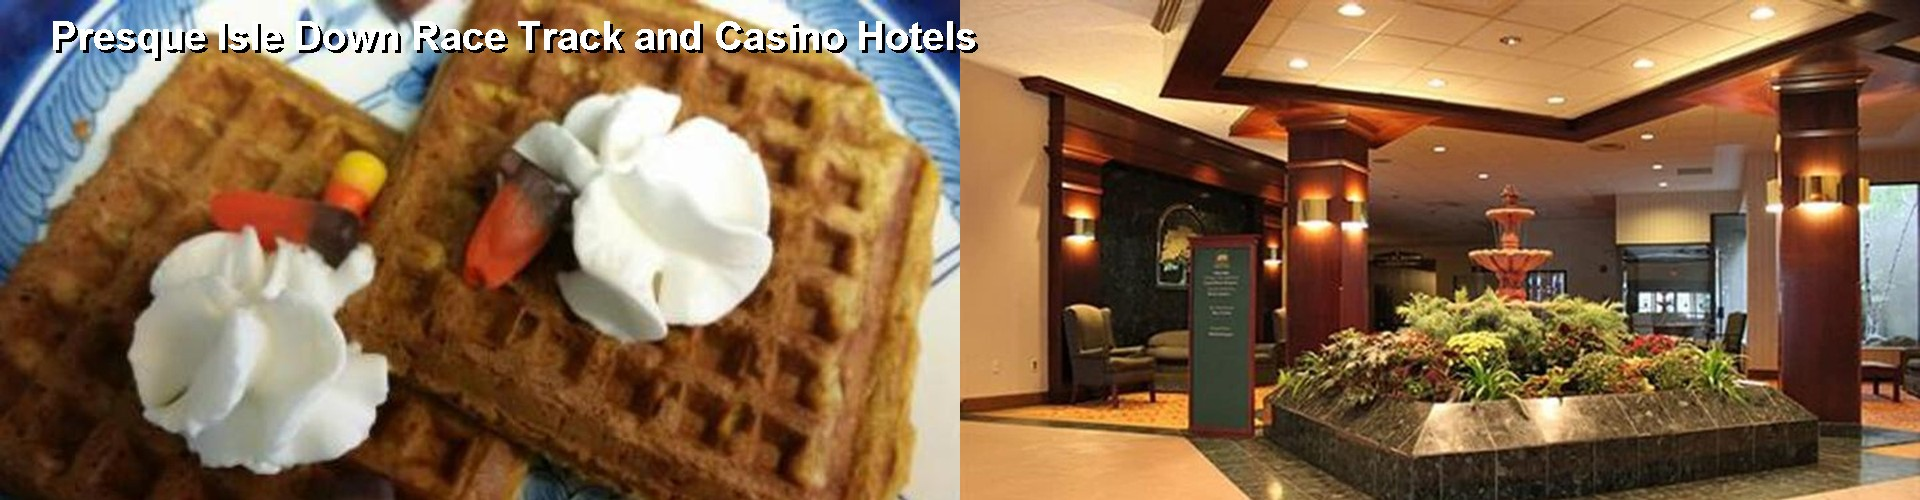 5 Best Hotels near Presque Isle Down Race Track and Casino